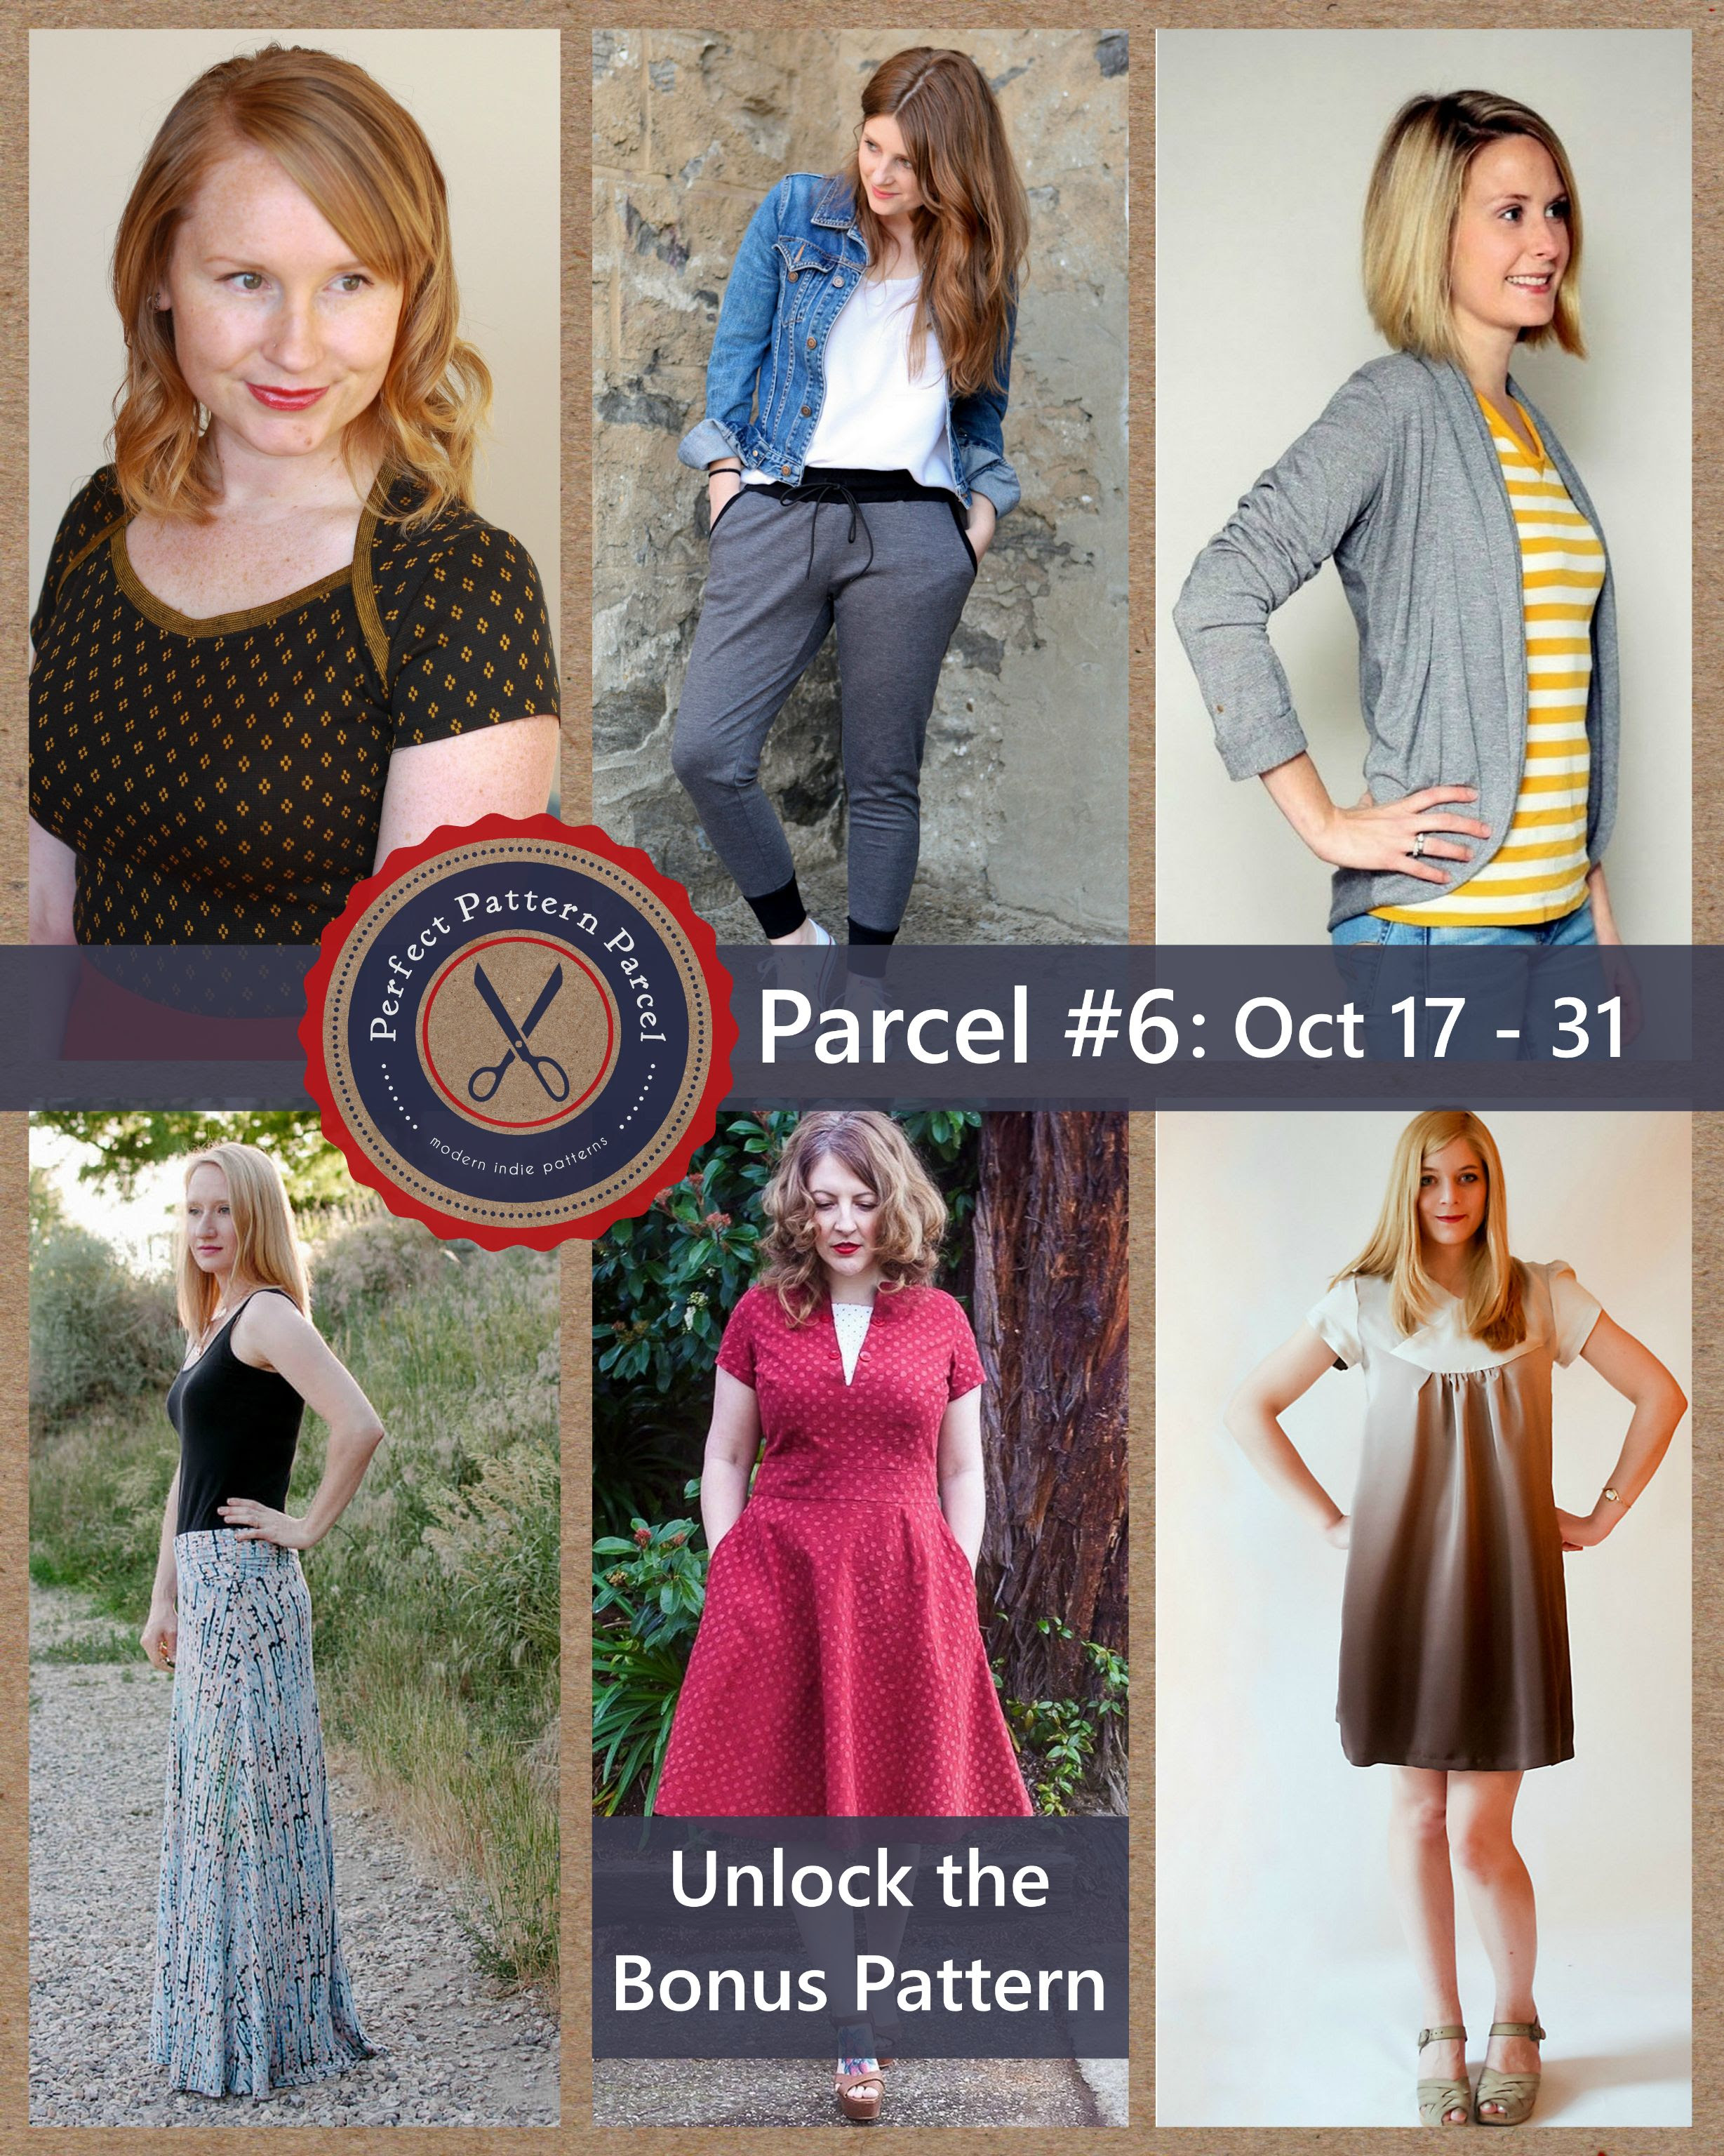 Pattern Parcel #6: Choose your own price and support DonorsChoose. Win/win!